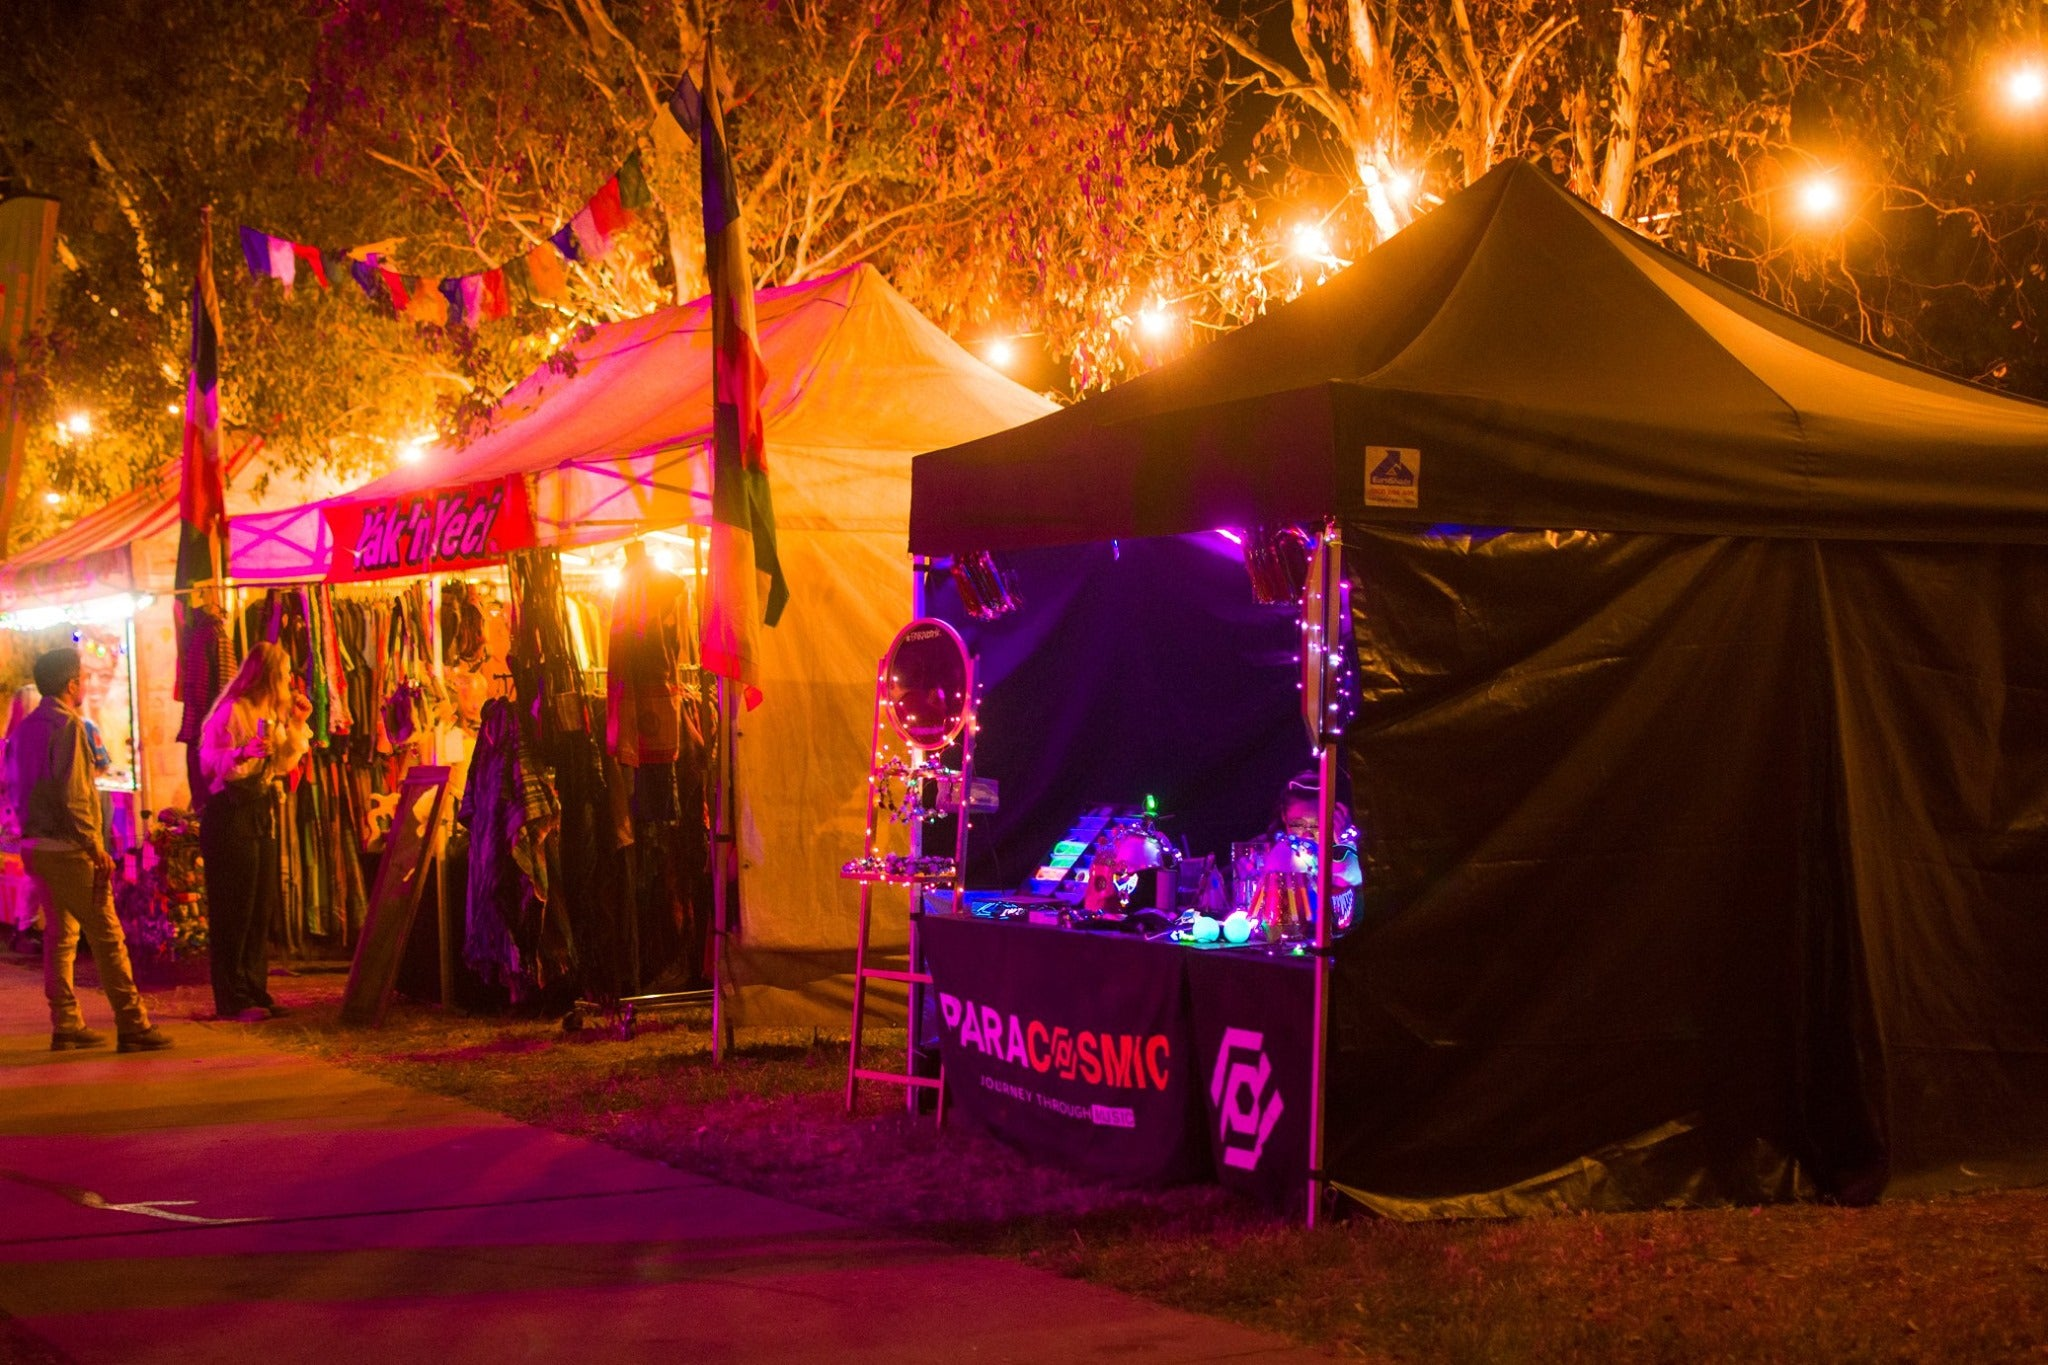 PARACOSMIC Pop Up Marquee Store at Luft 2019